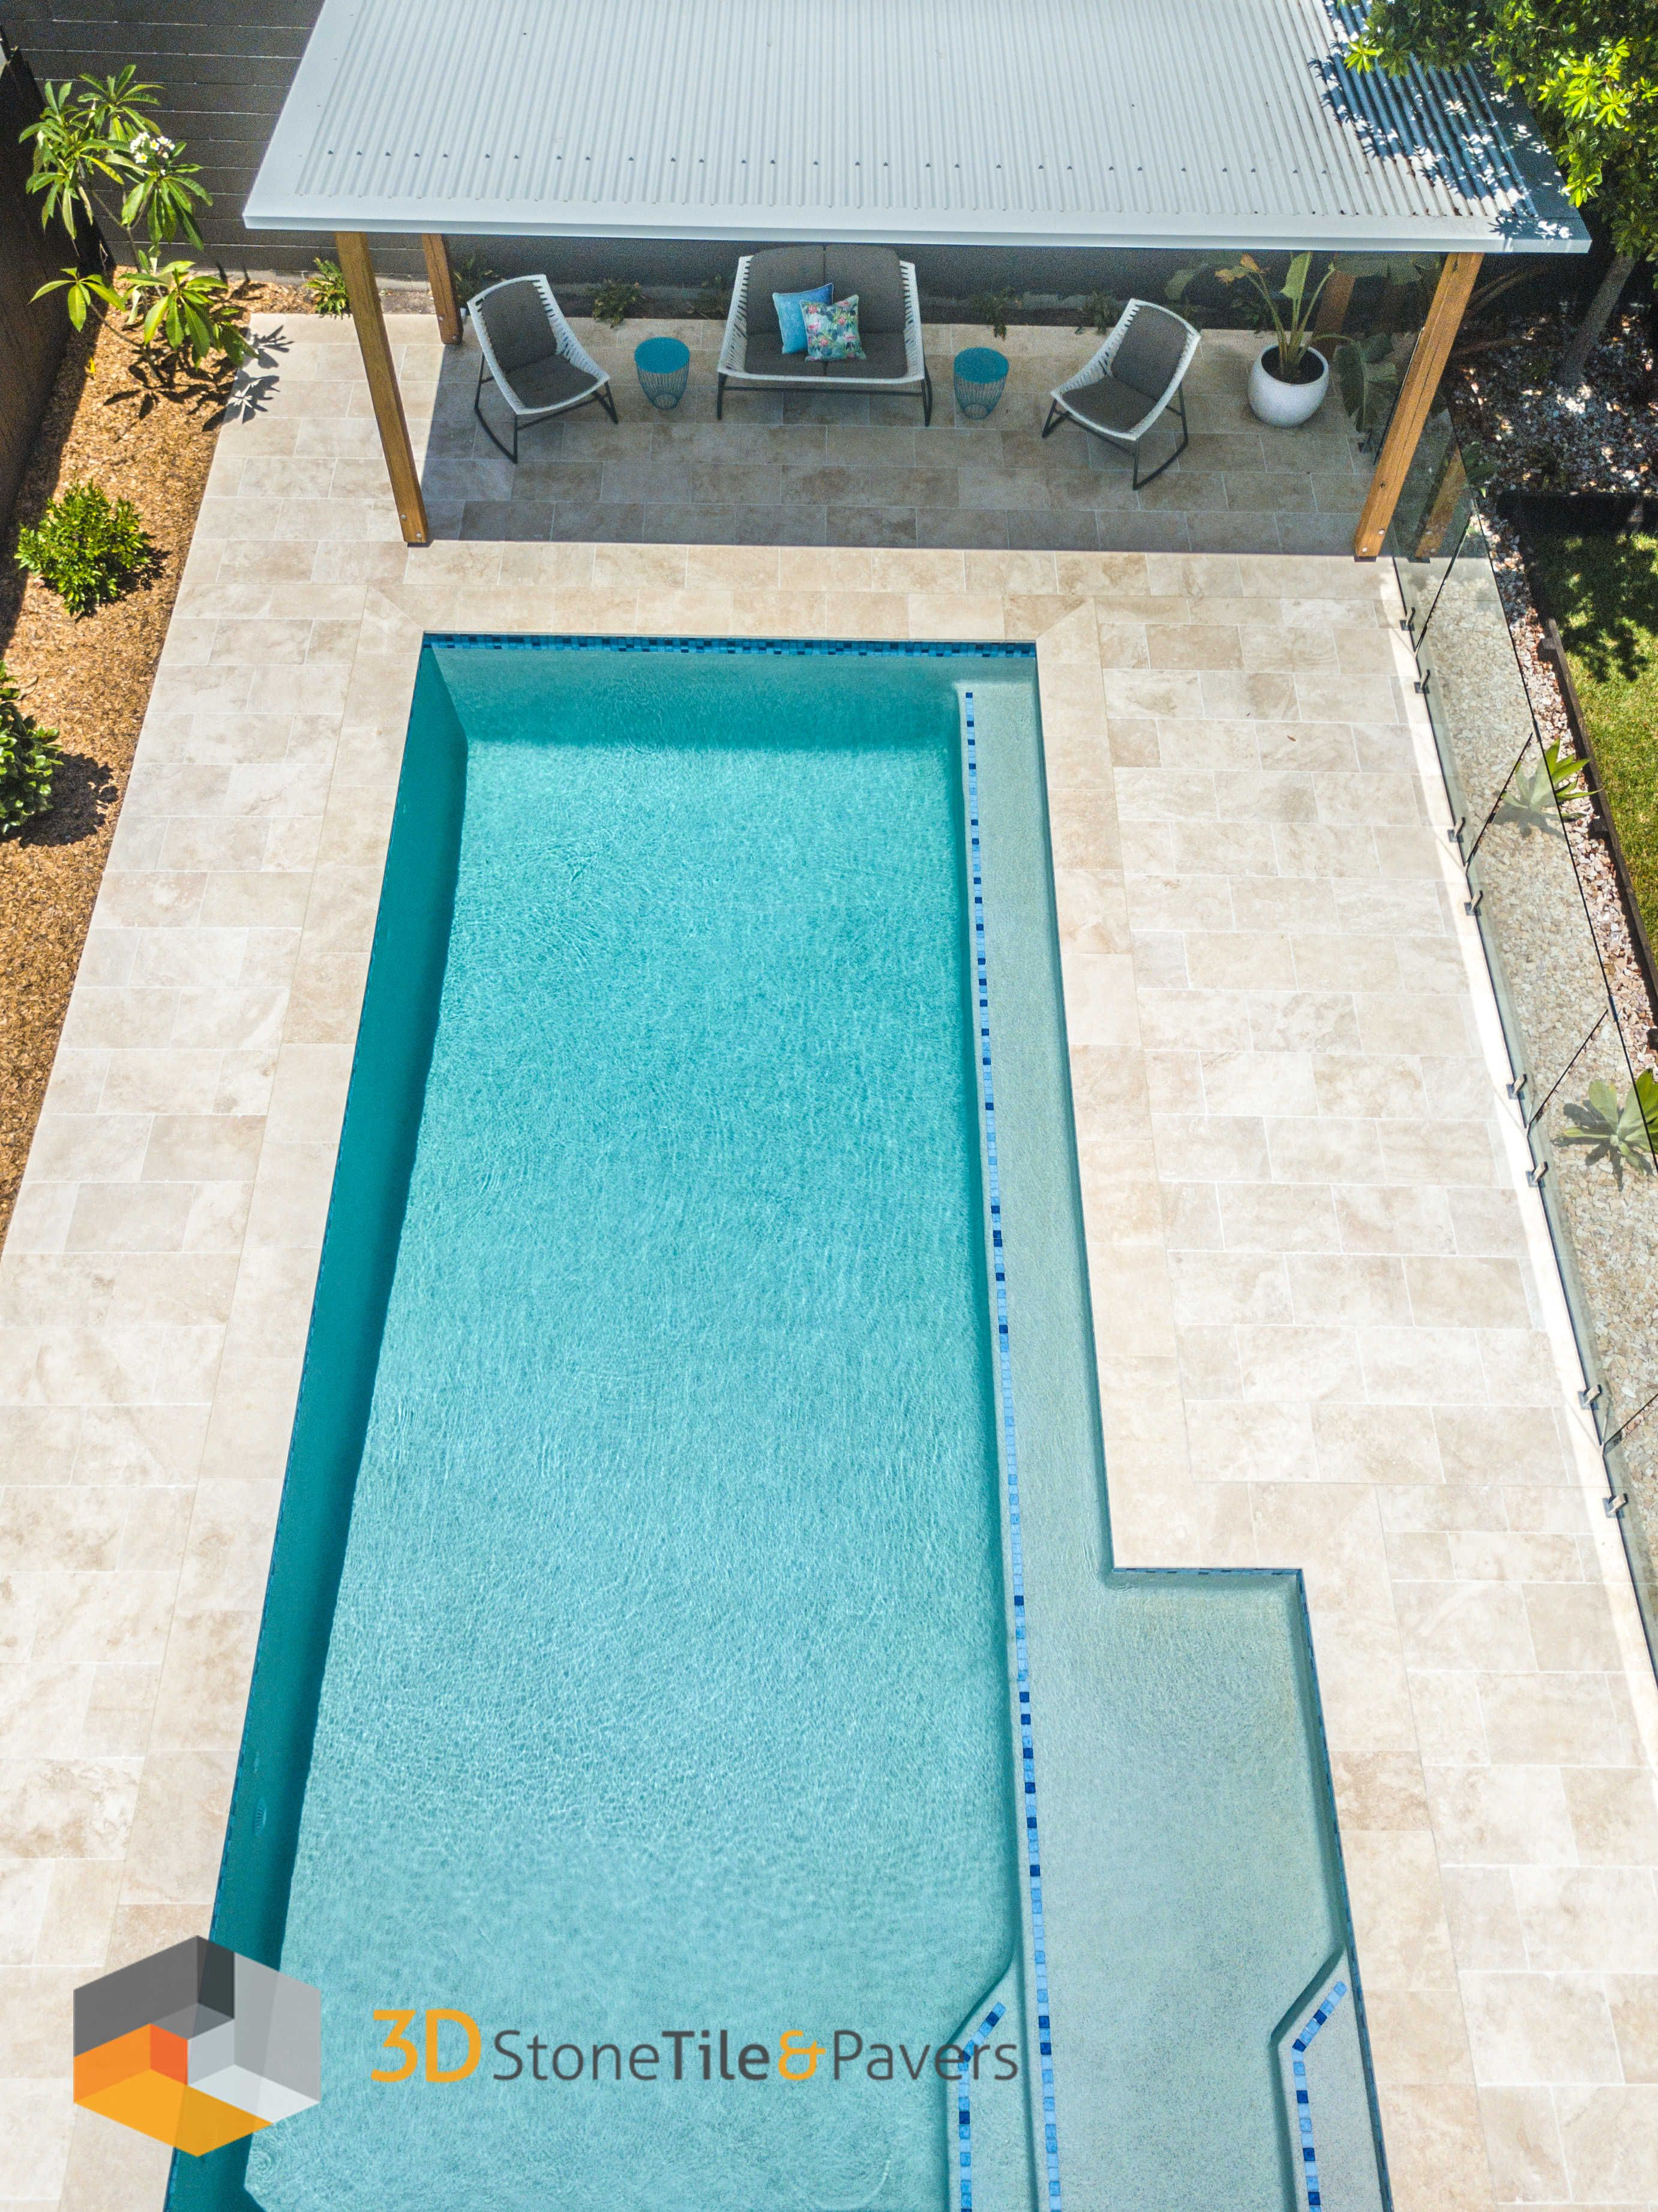 A Typical Australian Family Pool Travertine Crema Pool Copping 3d Stone Only Source High Quality Natural St Travertine Pool Pool Pavers Travertine Pool Tile